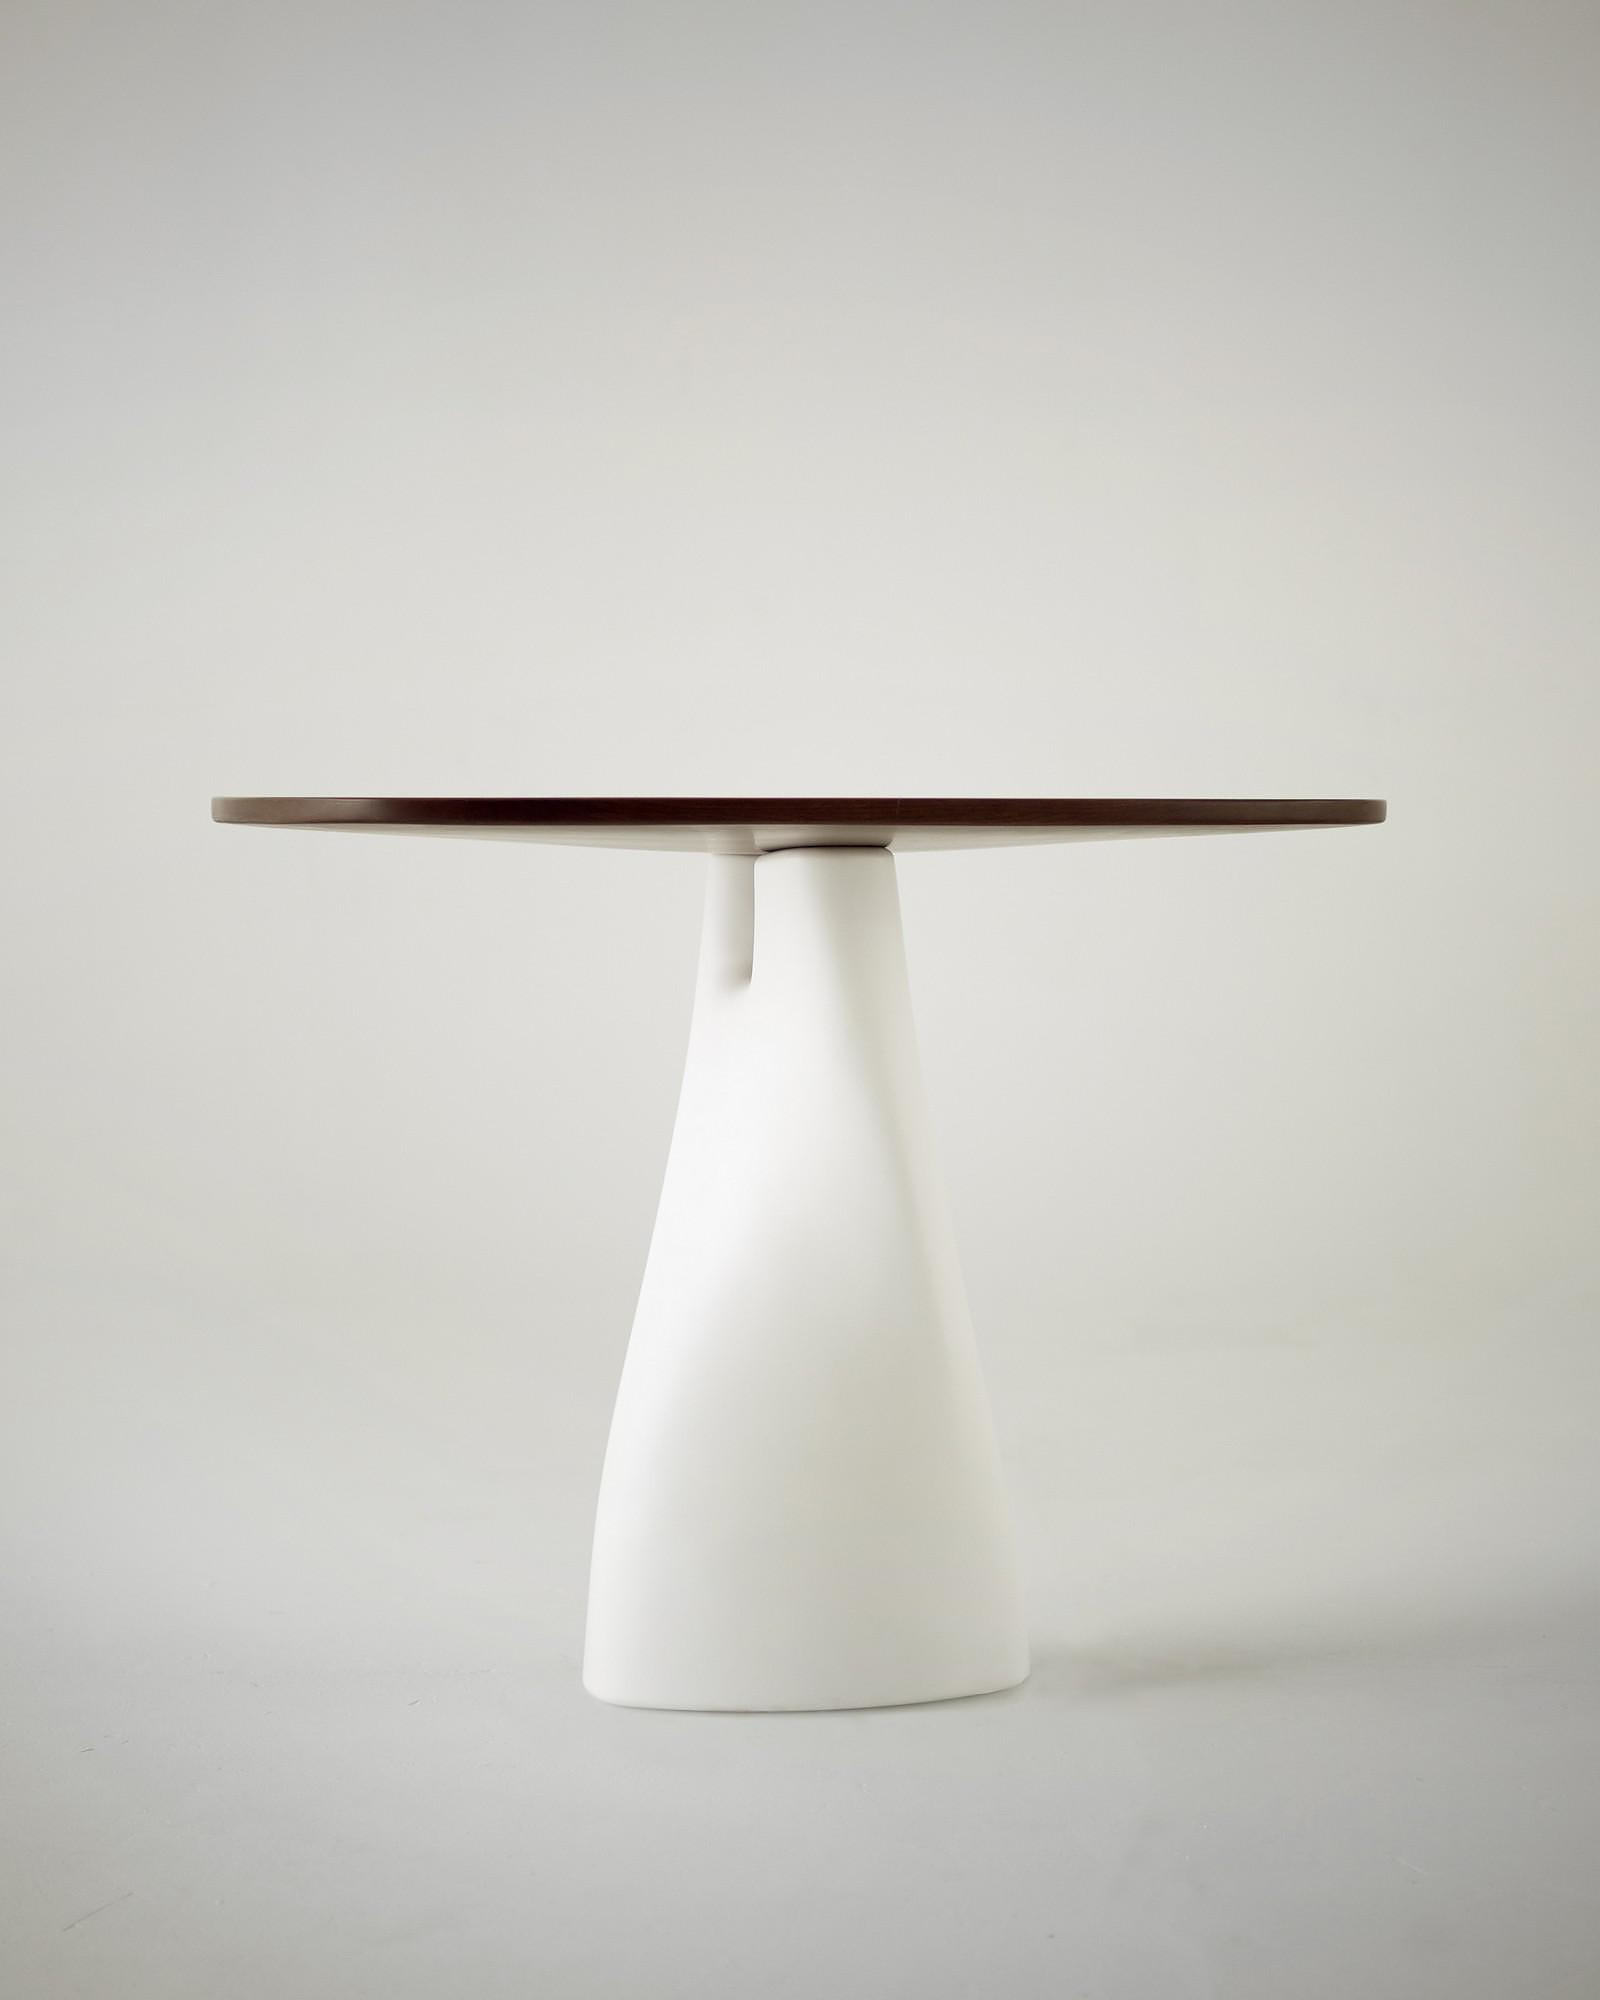 Treeangle a table/vase fusion by Anna Strupinskaya.